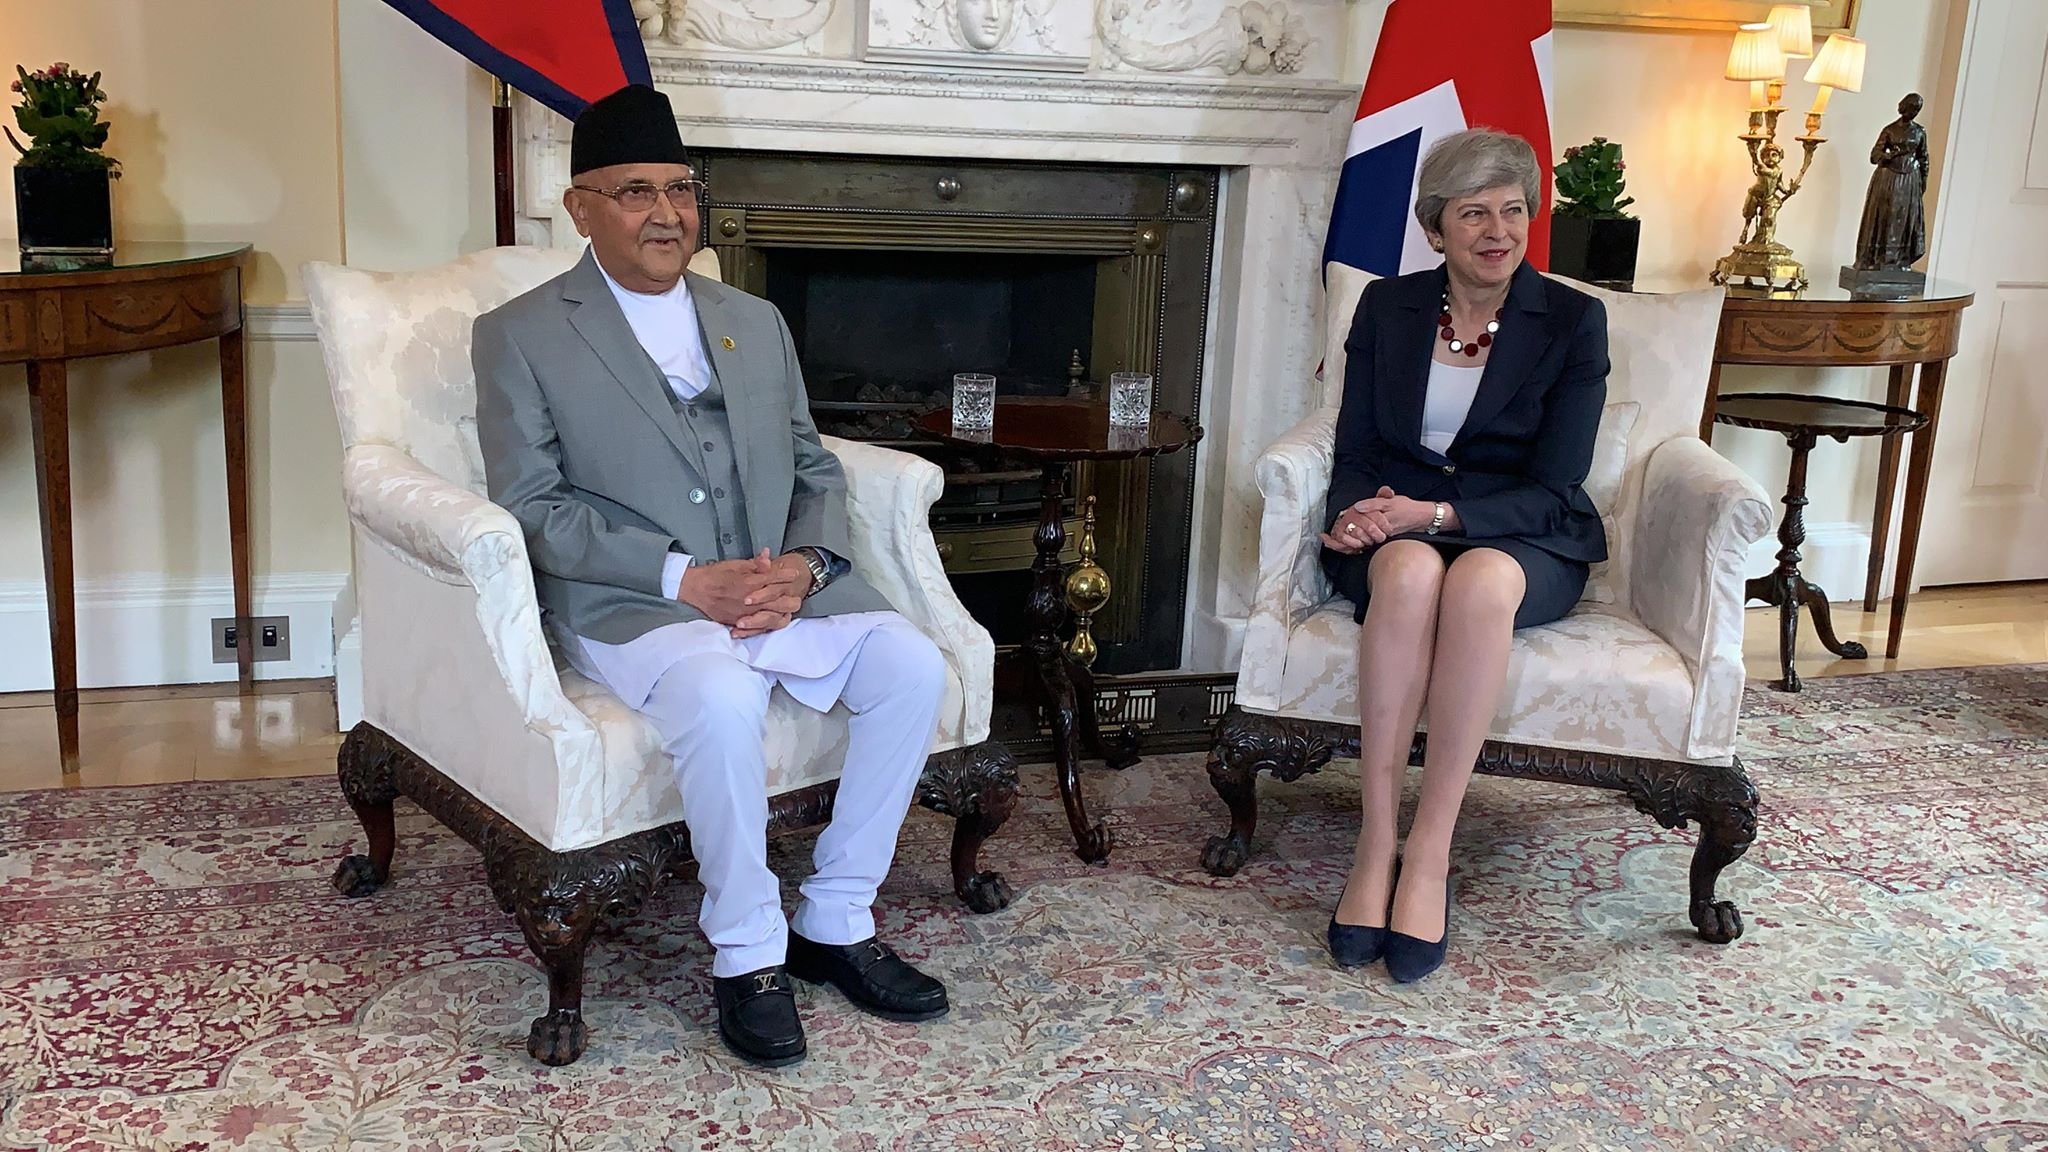 Nepal, UK agree to continue discussions on Gurkha demands